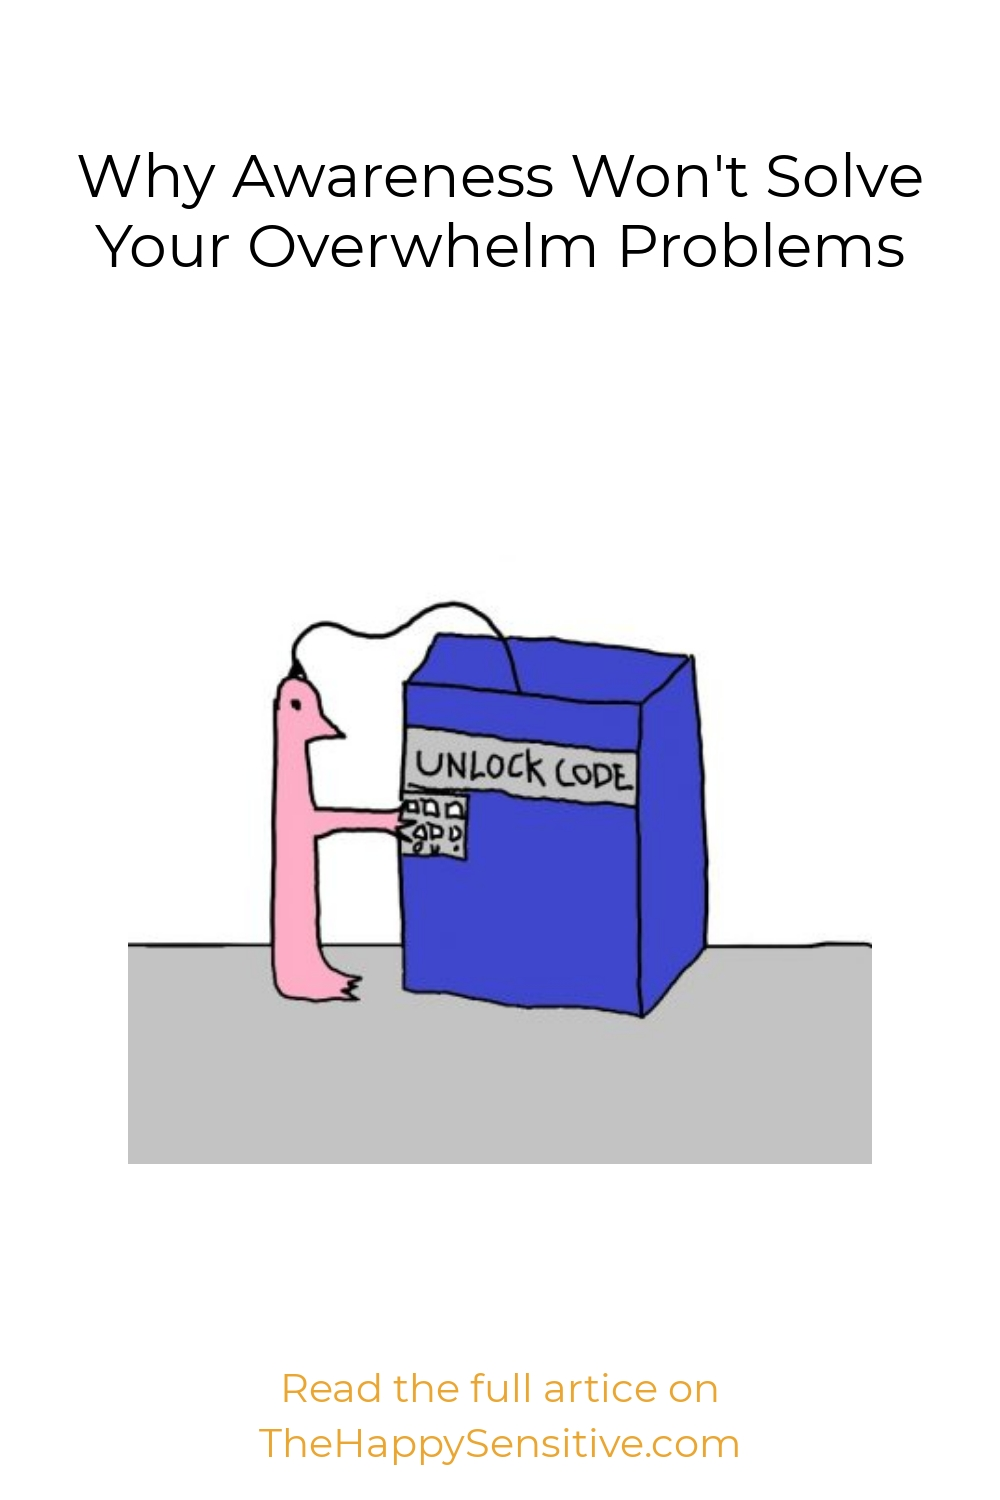 Why Awareness Won't Solve Your Overwhelm Problems